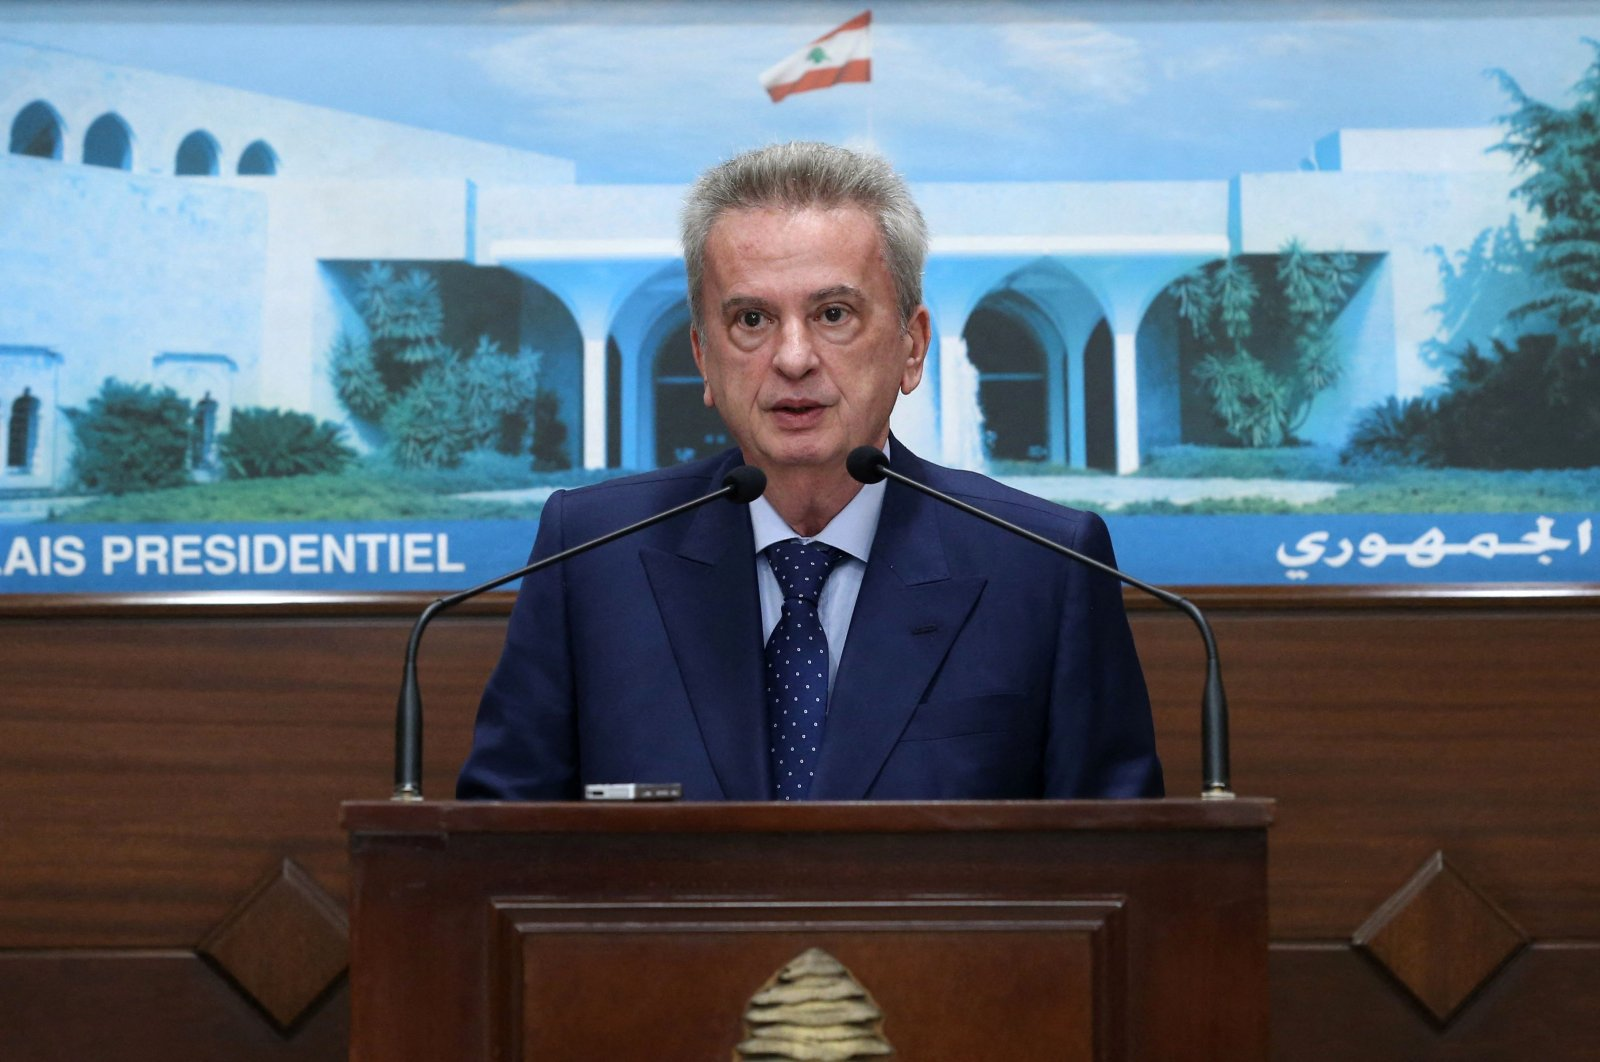 In this file handout photo provided by the Lebanese photo agency Dalati and Nohra on June 3, 2021, Lebanon's Central Bank Governor Riad Salameh addresses the media after a meeting with the country's president at the Baabda presidential palace, east of the capital Beirut, Lebanon. (AFP Photo)